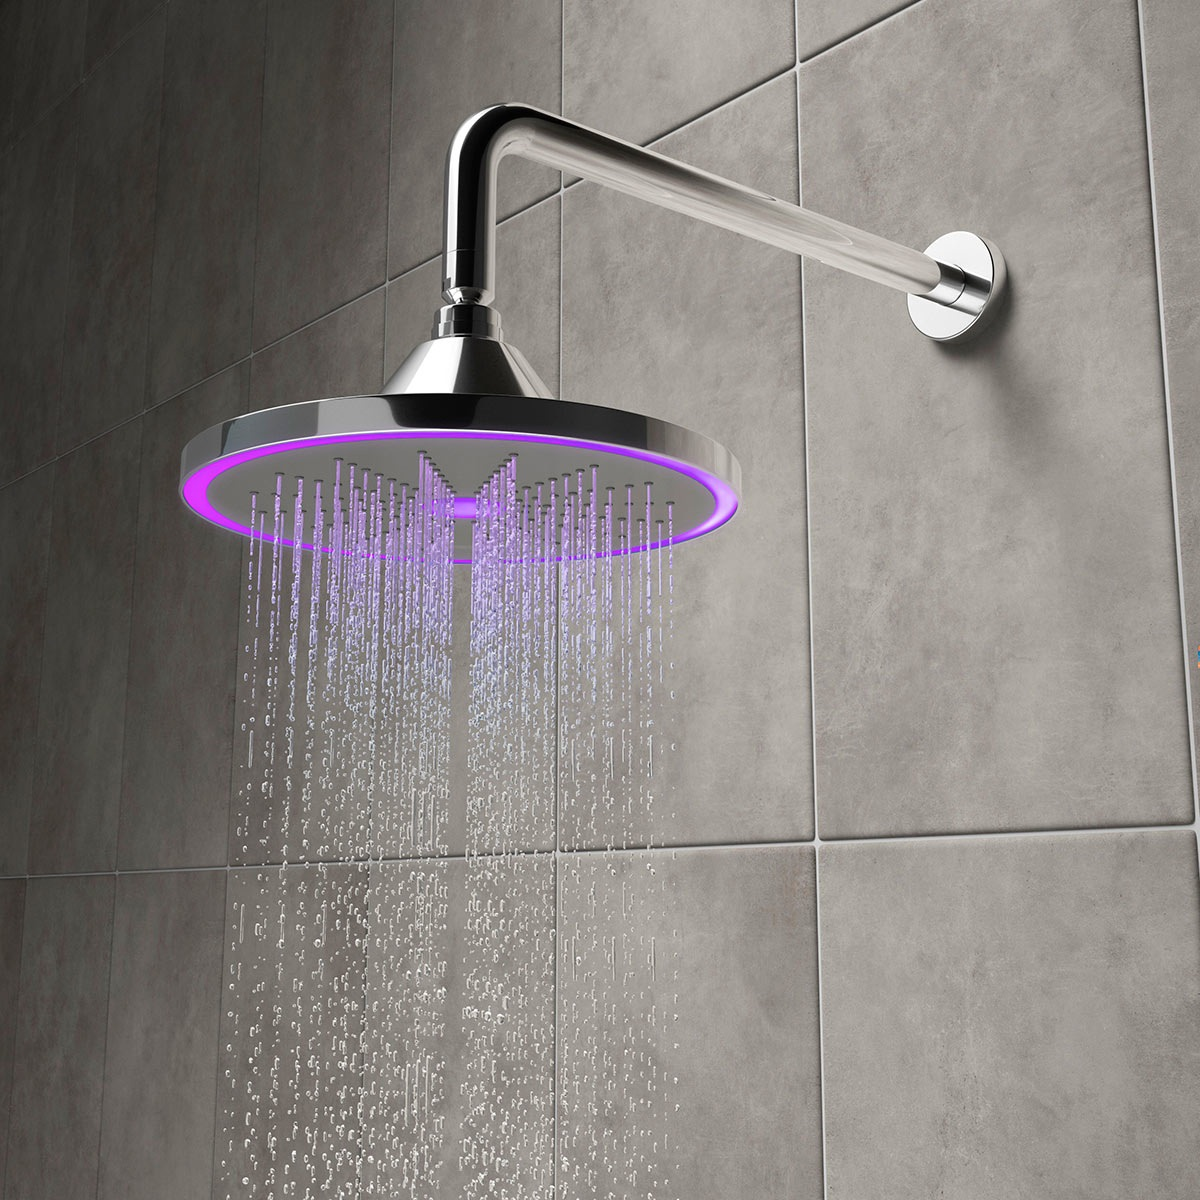 Hydro LED shower head